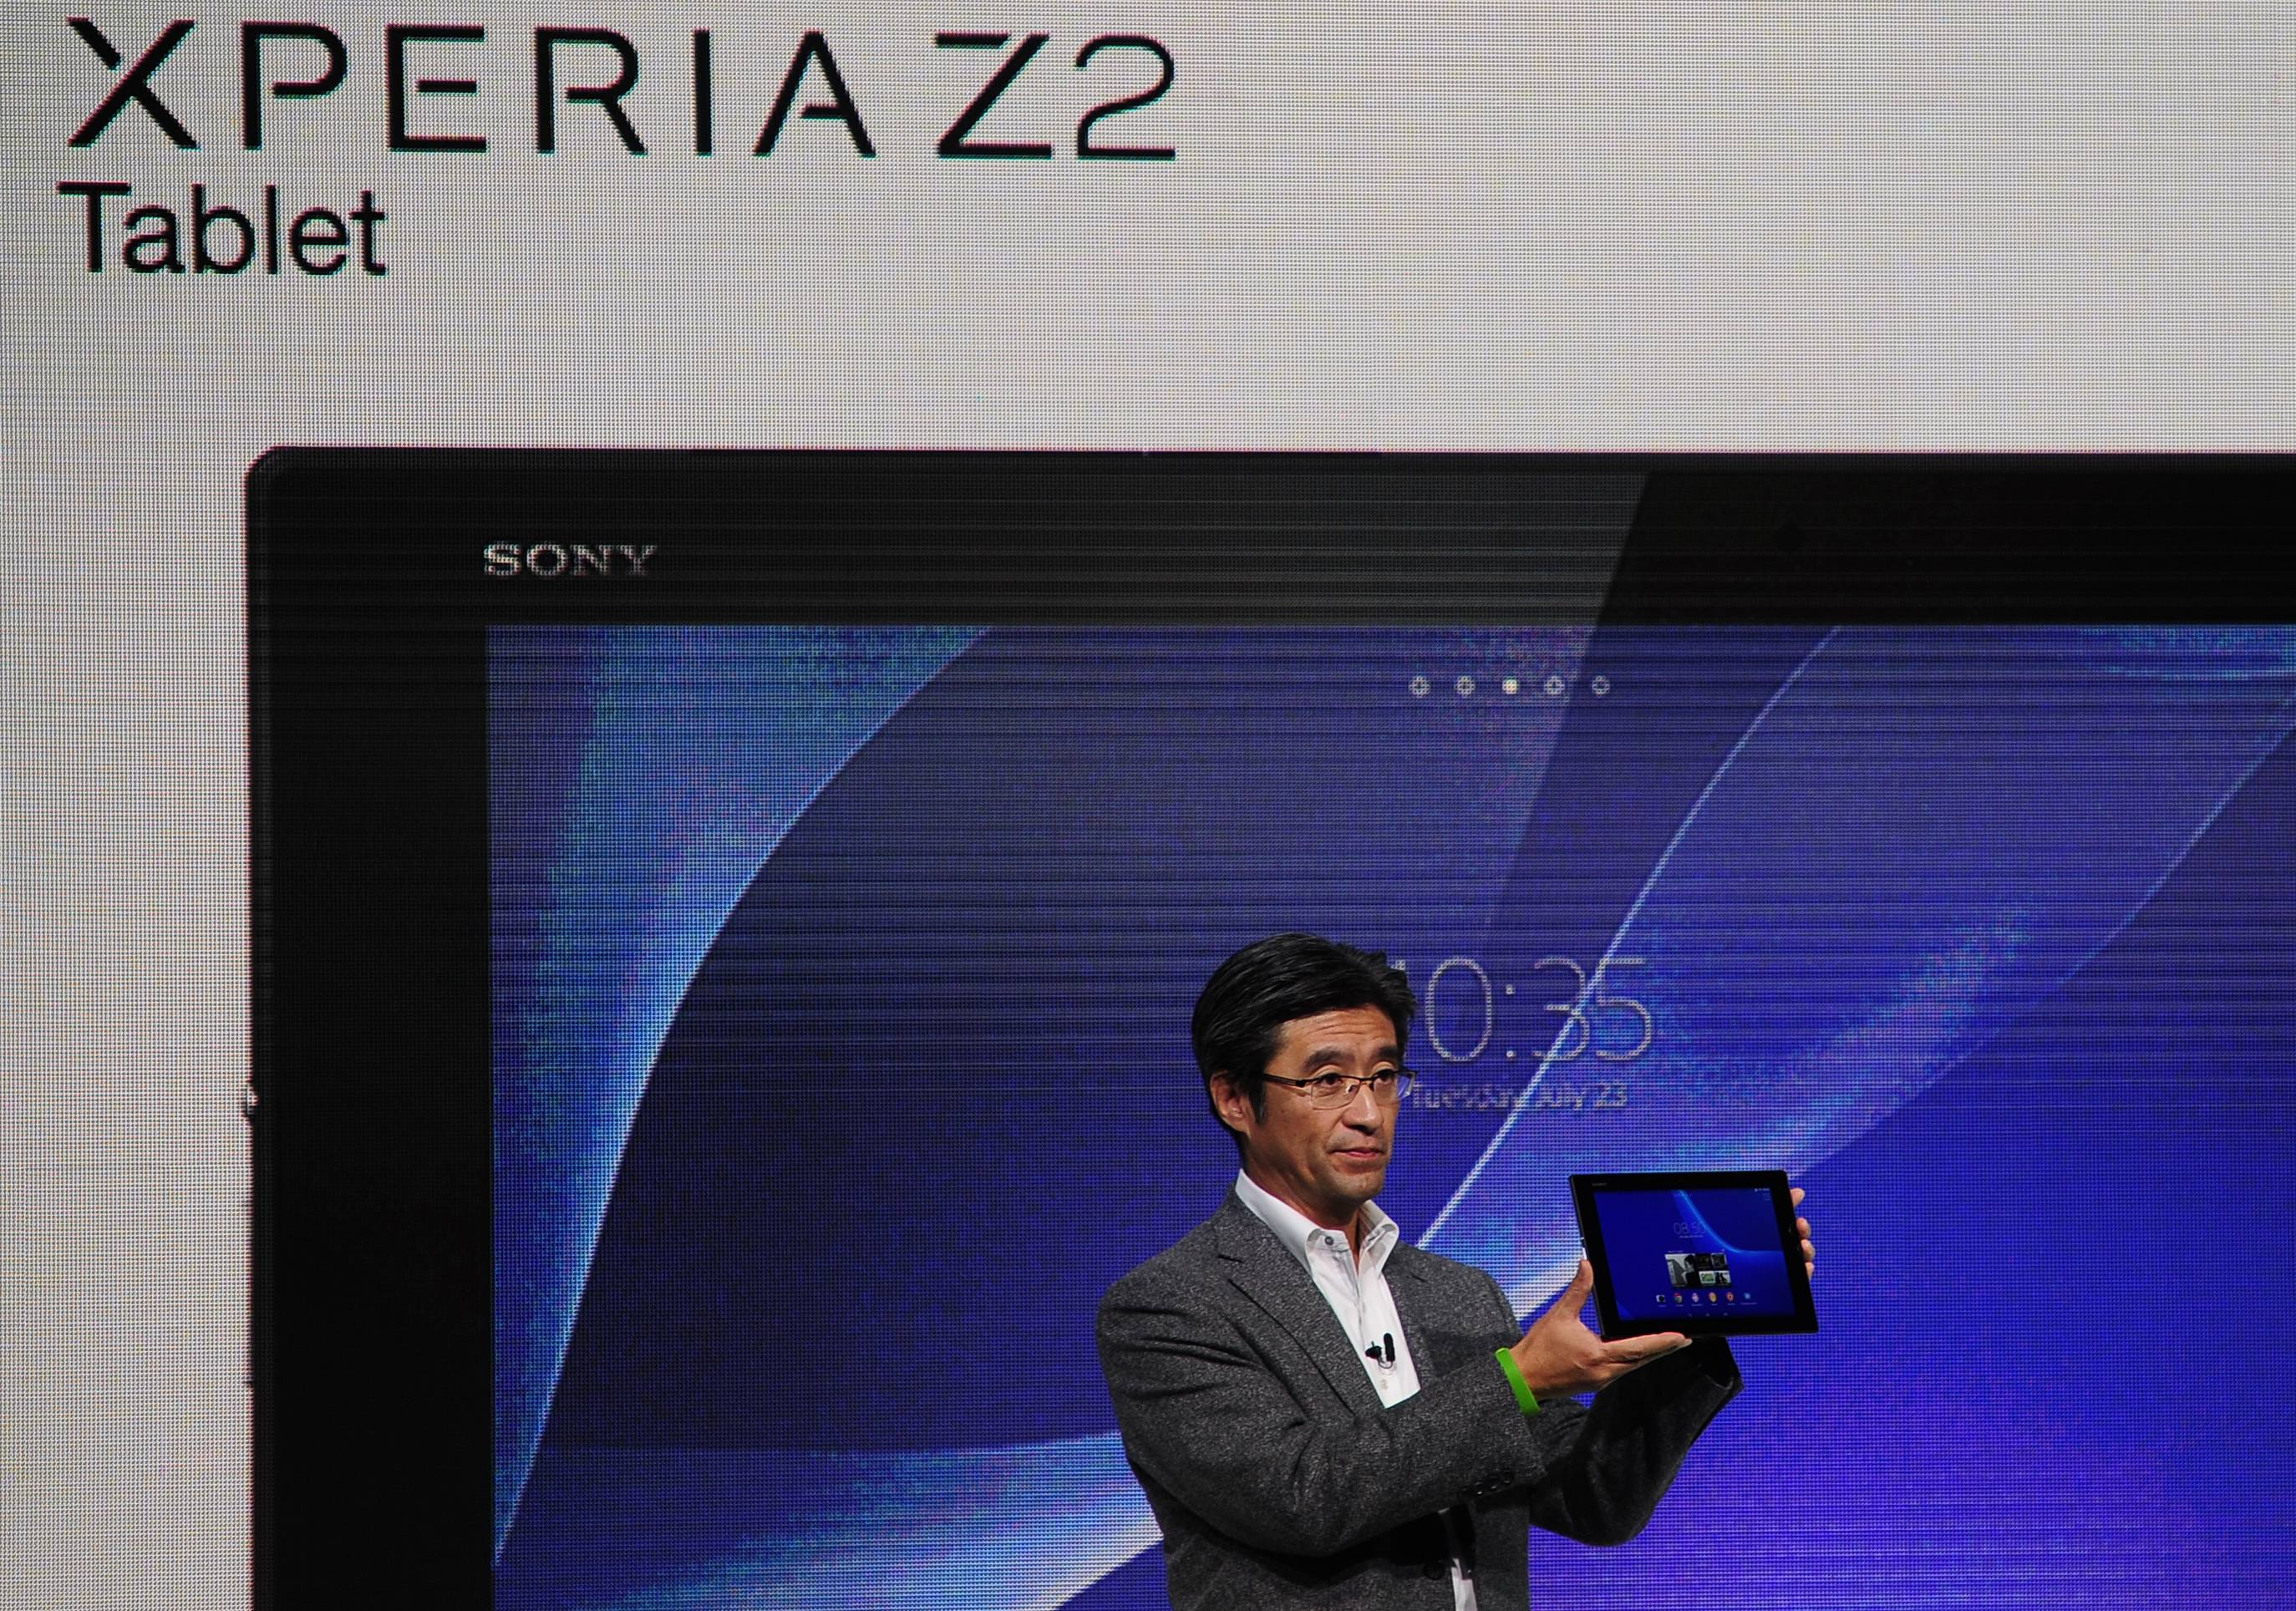 President and CEO of Sony Mobile Communications Kunimasa Suzuki presents the Xperia Z2 tablet during the Mobile World Congress, the world's largest mobile phone trade show in Barcelona, Spain.